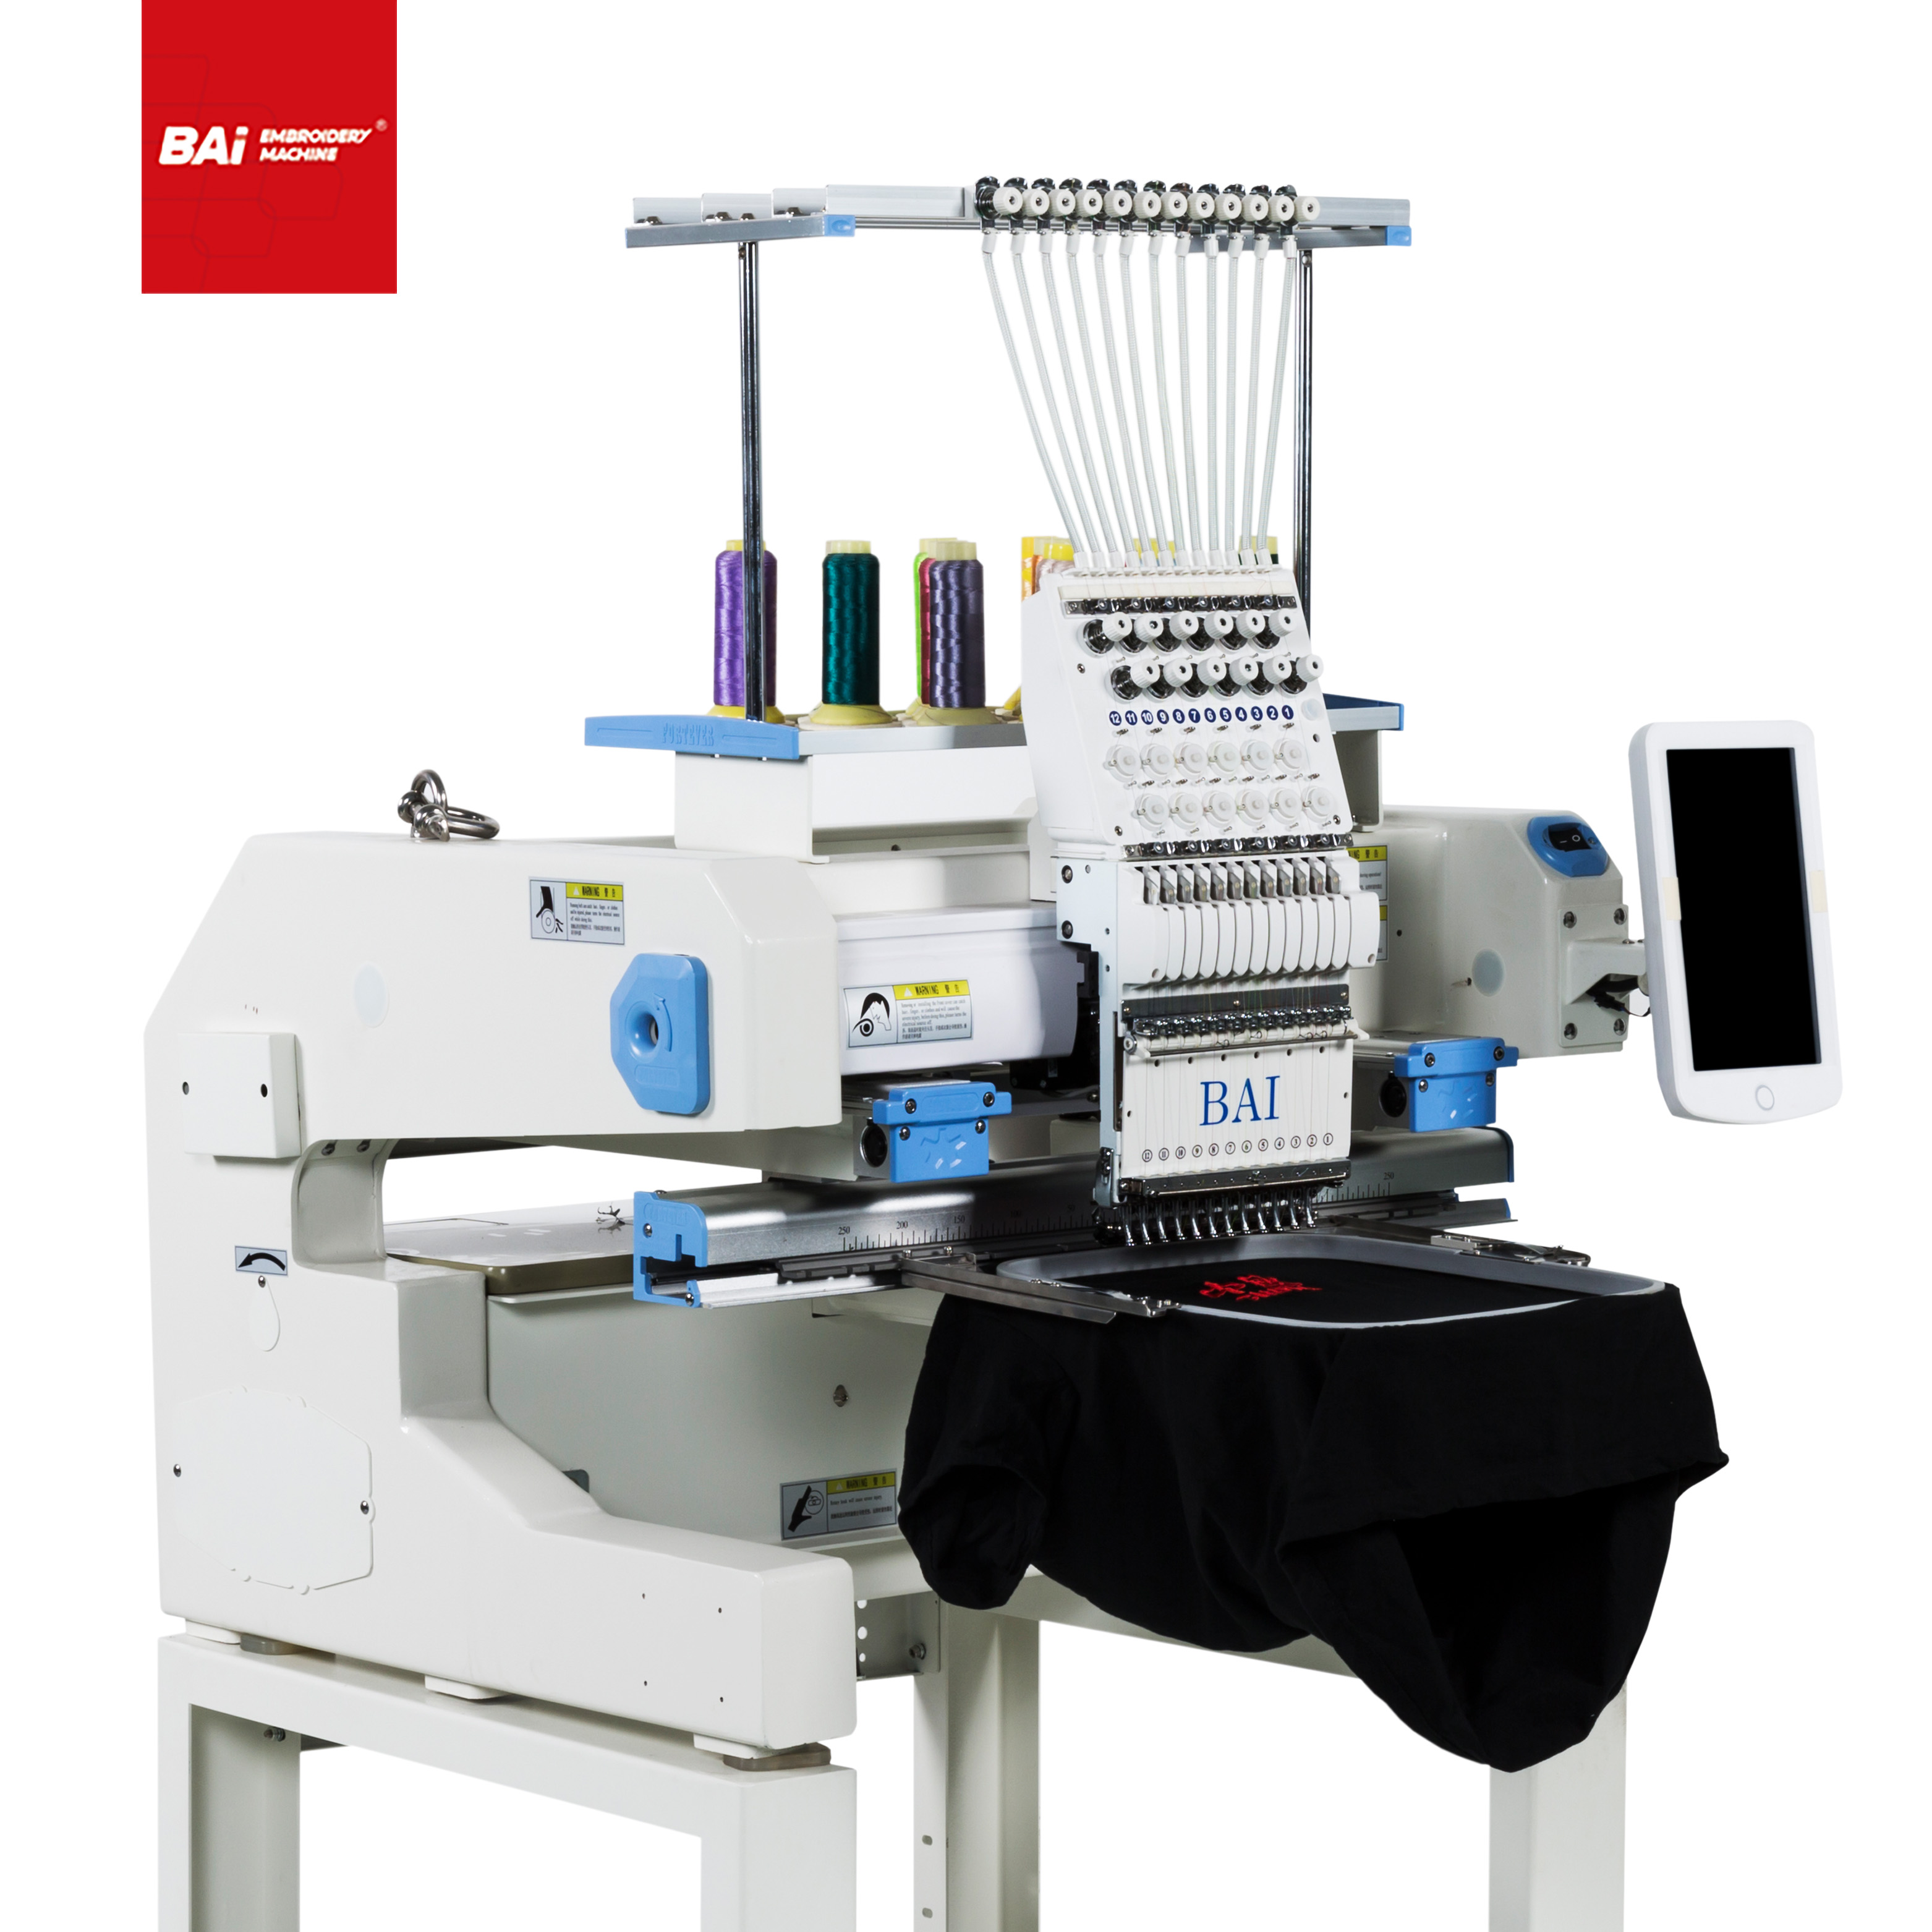 BAI High Speed Single Head Machine for Household Embroidery Machine with Price